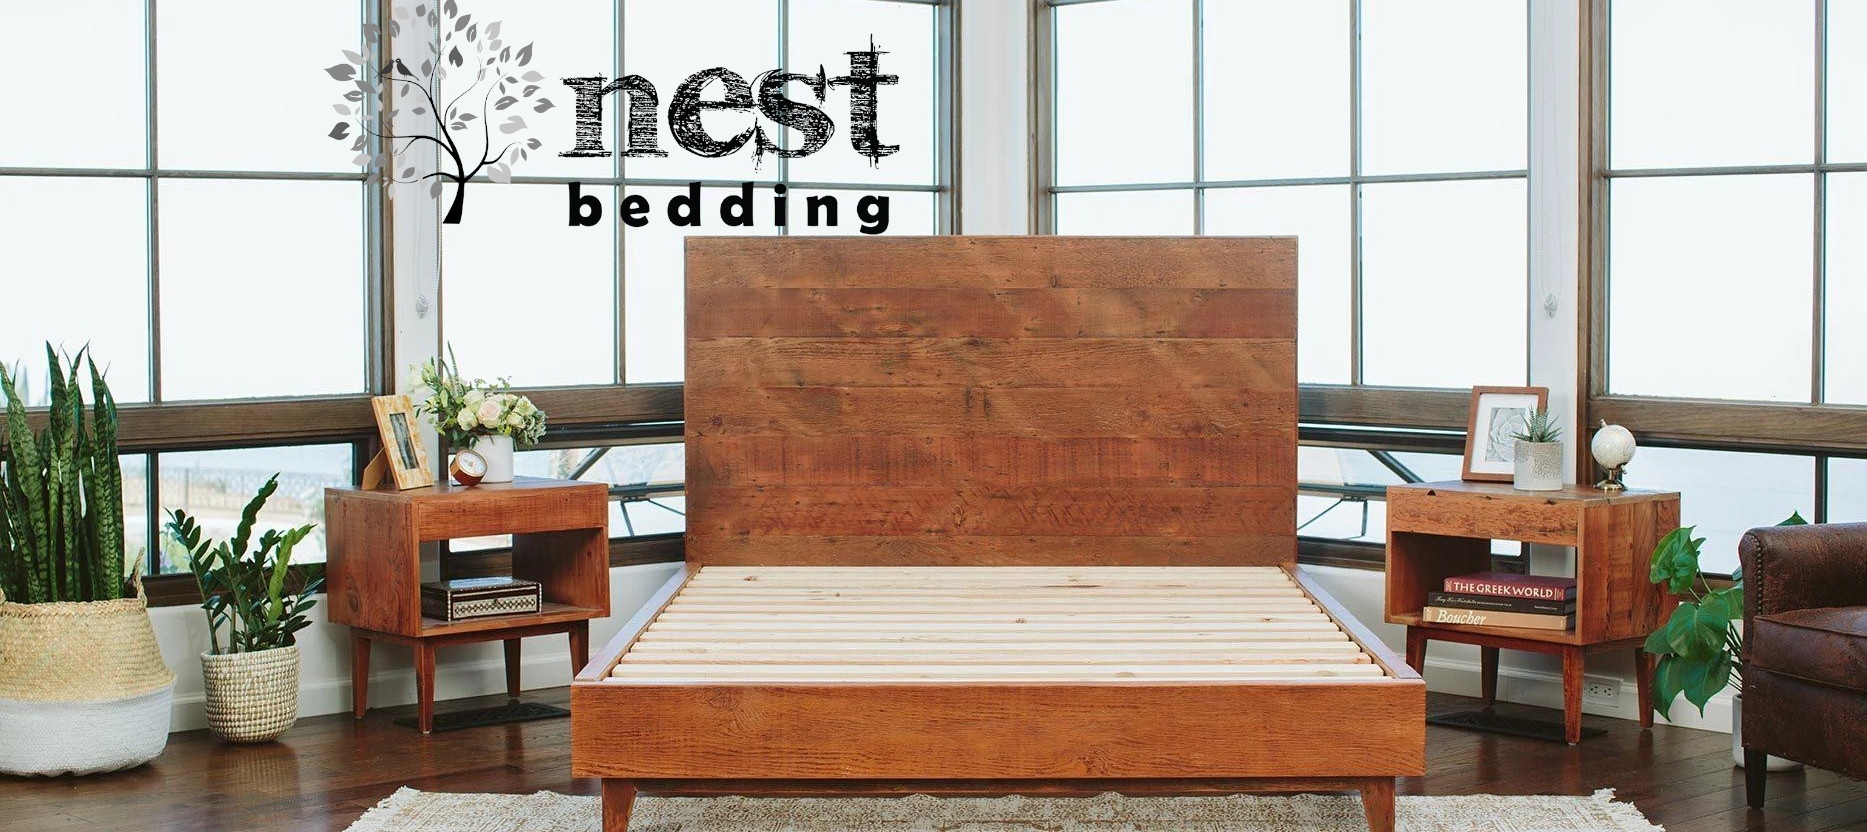 reclaimed wood bedroom furniture from nest bedding